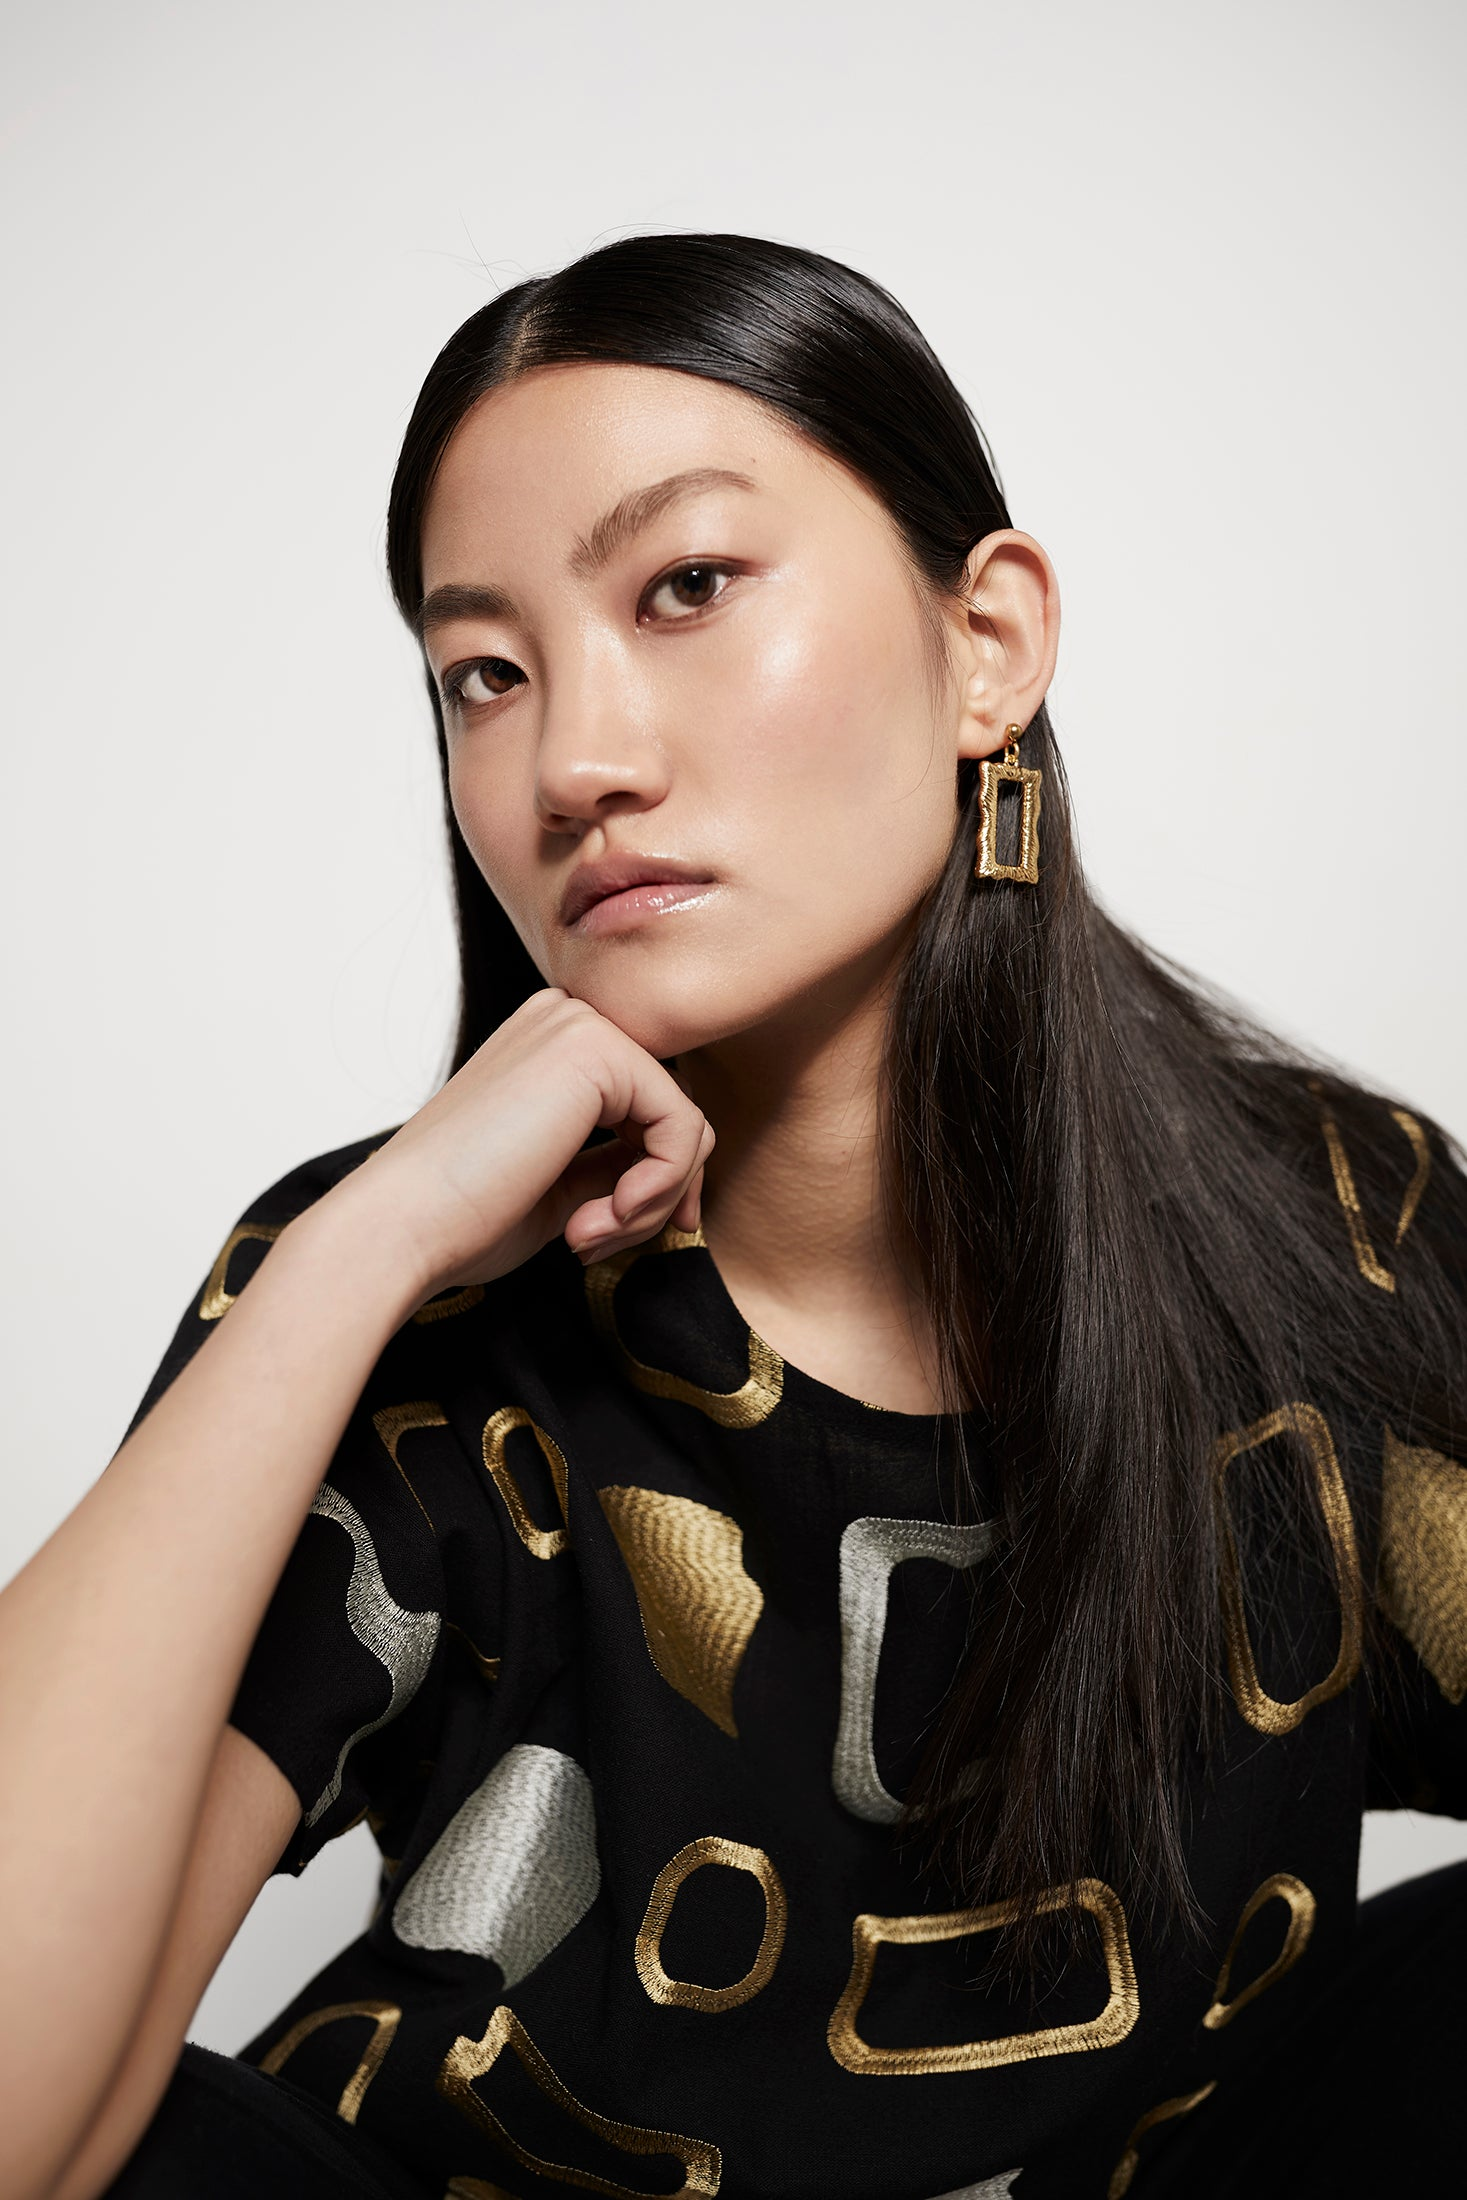 keegan ethical fashion. Clothing made in Melbourne, Australia. Gold retangle earrings